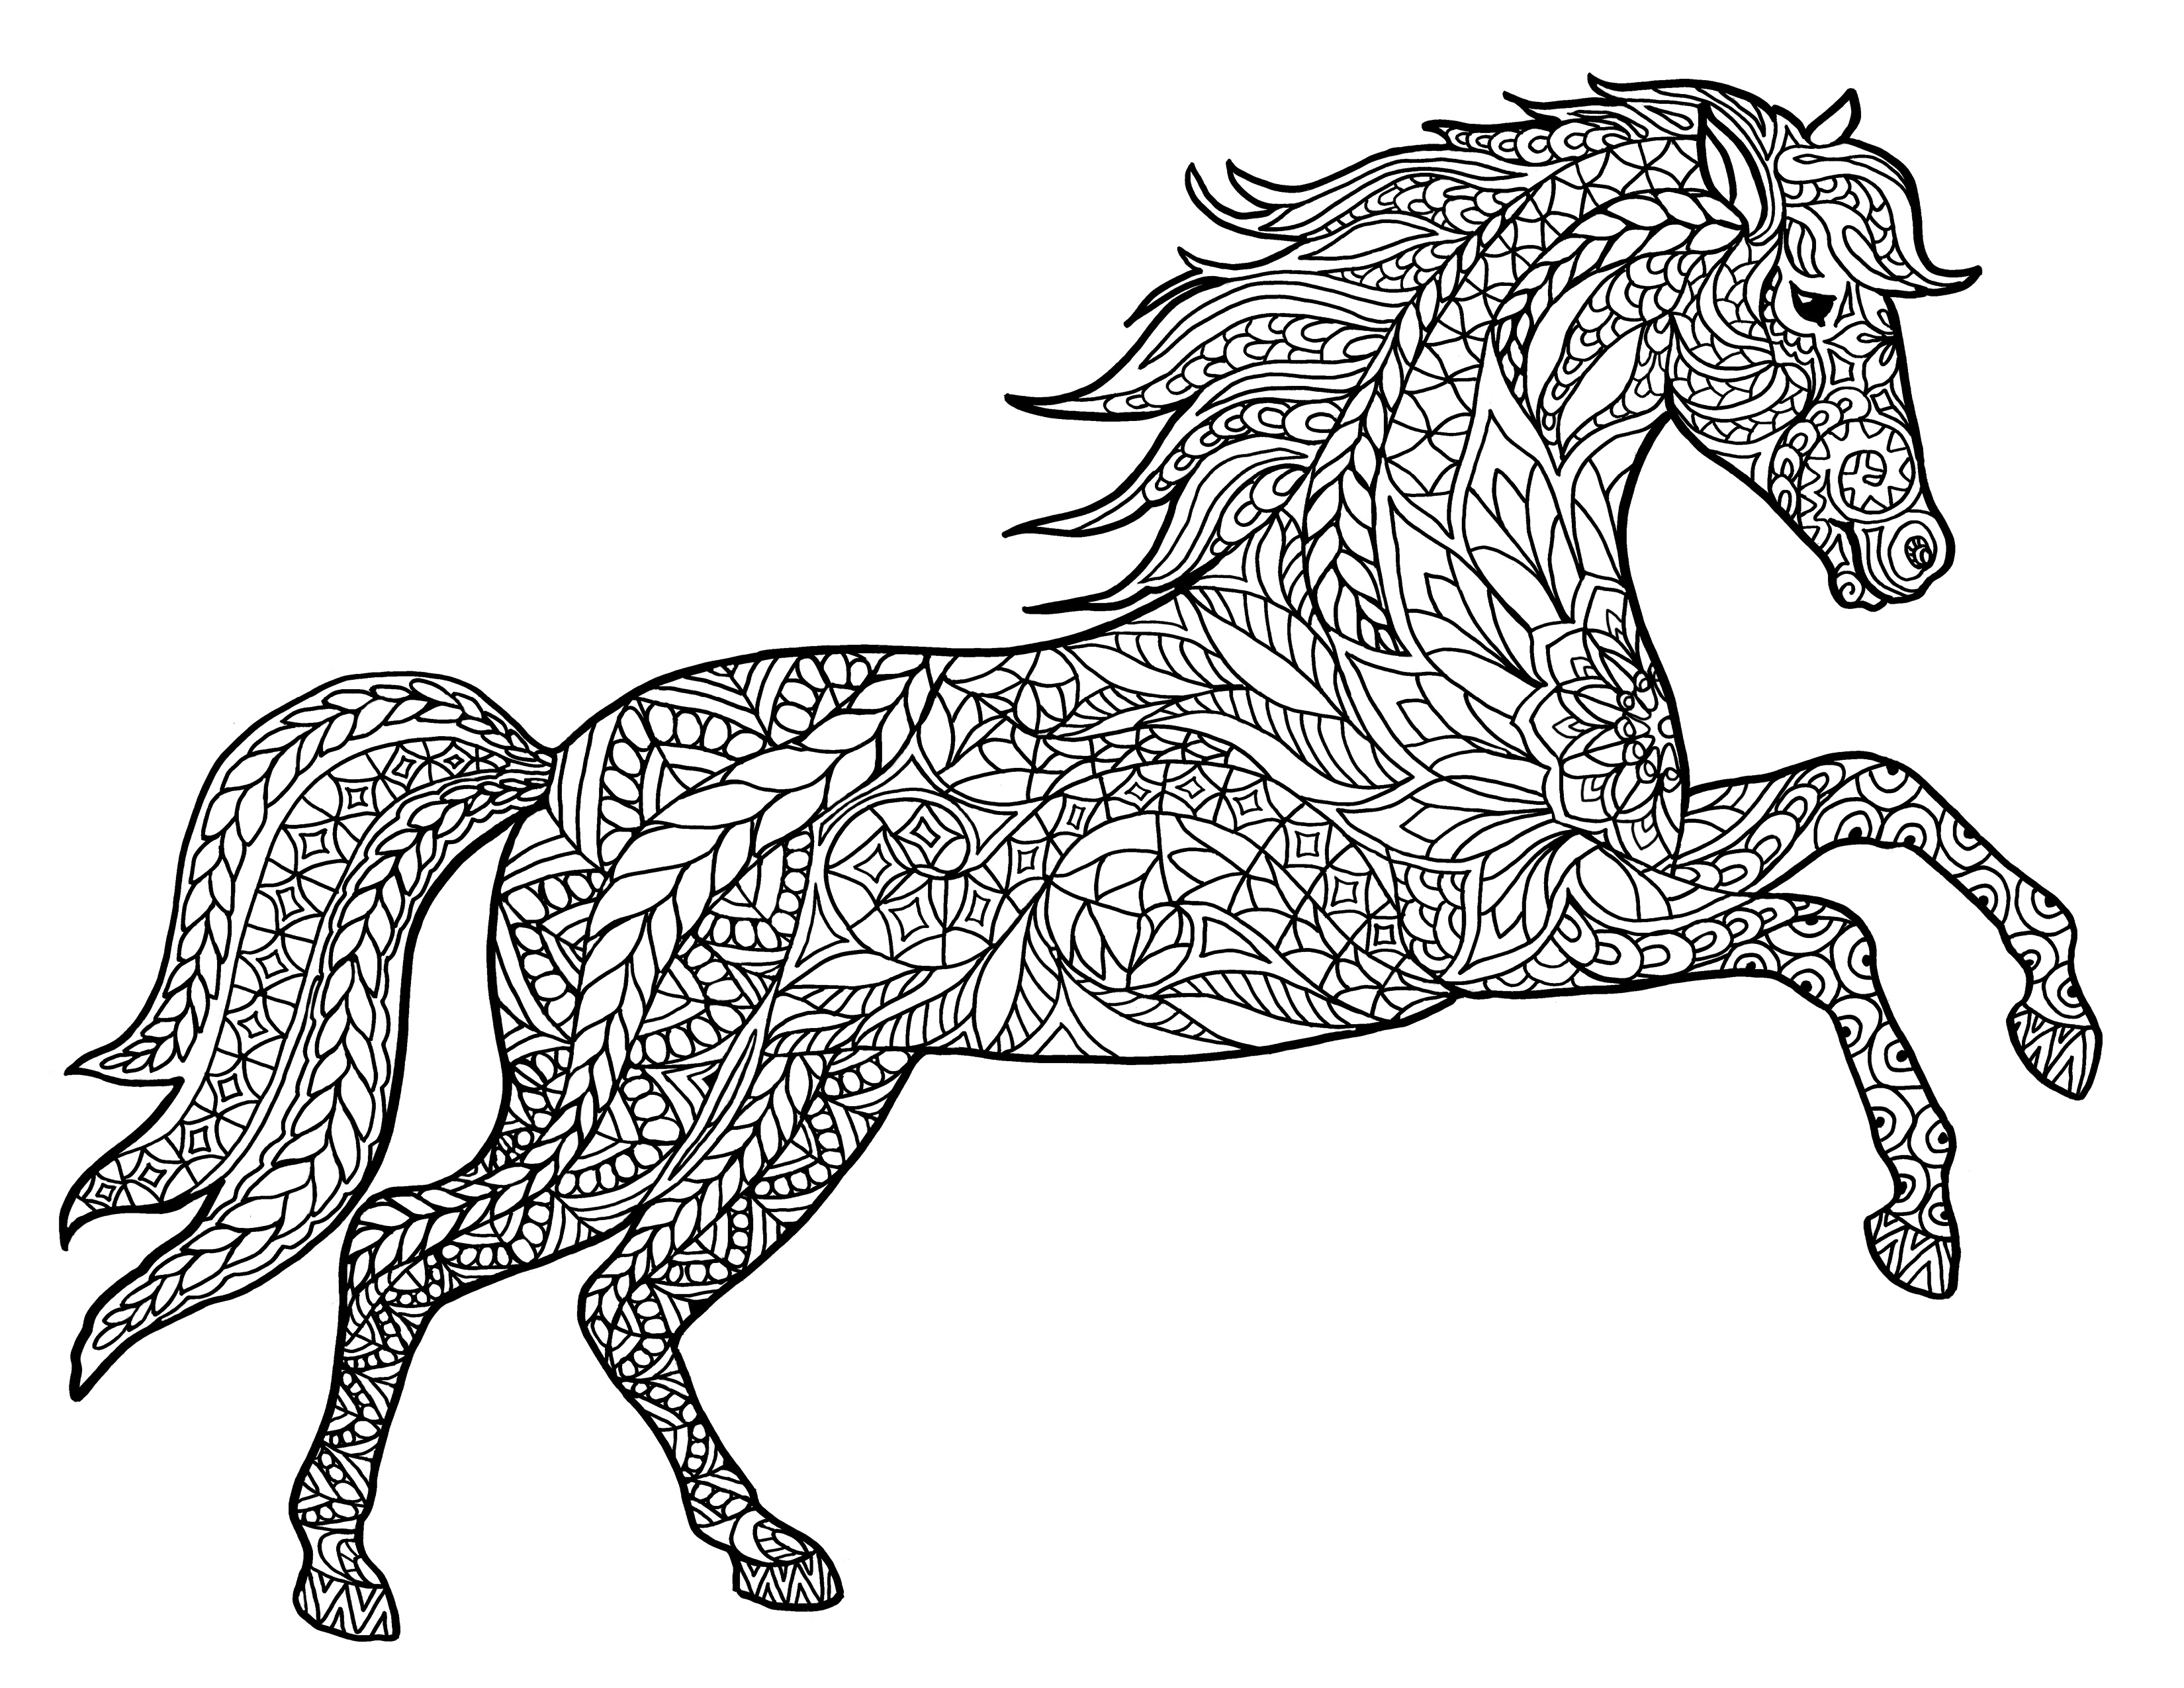 coloring pictures of animals adult coloring pages animals best coloring pages for kids of pictures coloring animals